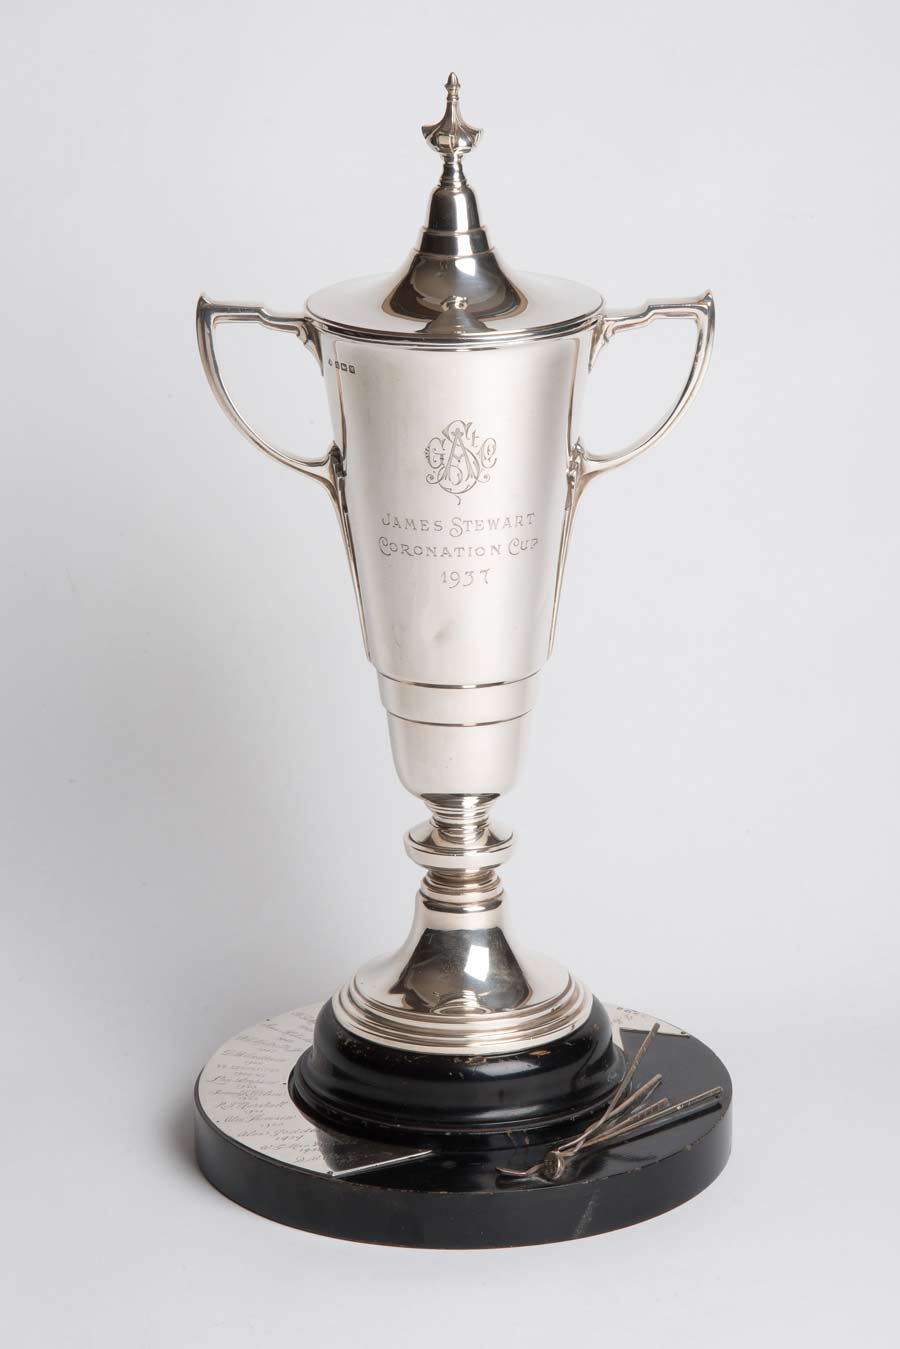 The James Stewart Coronation Cup